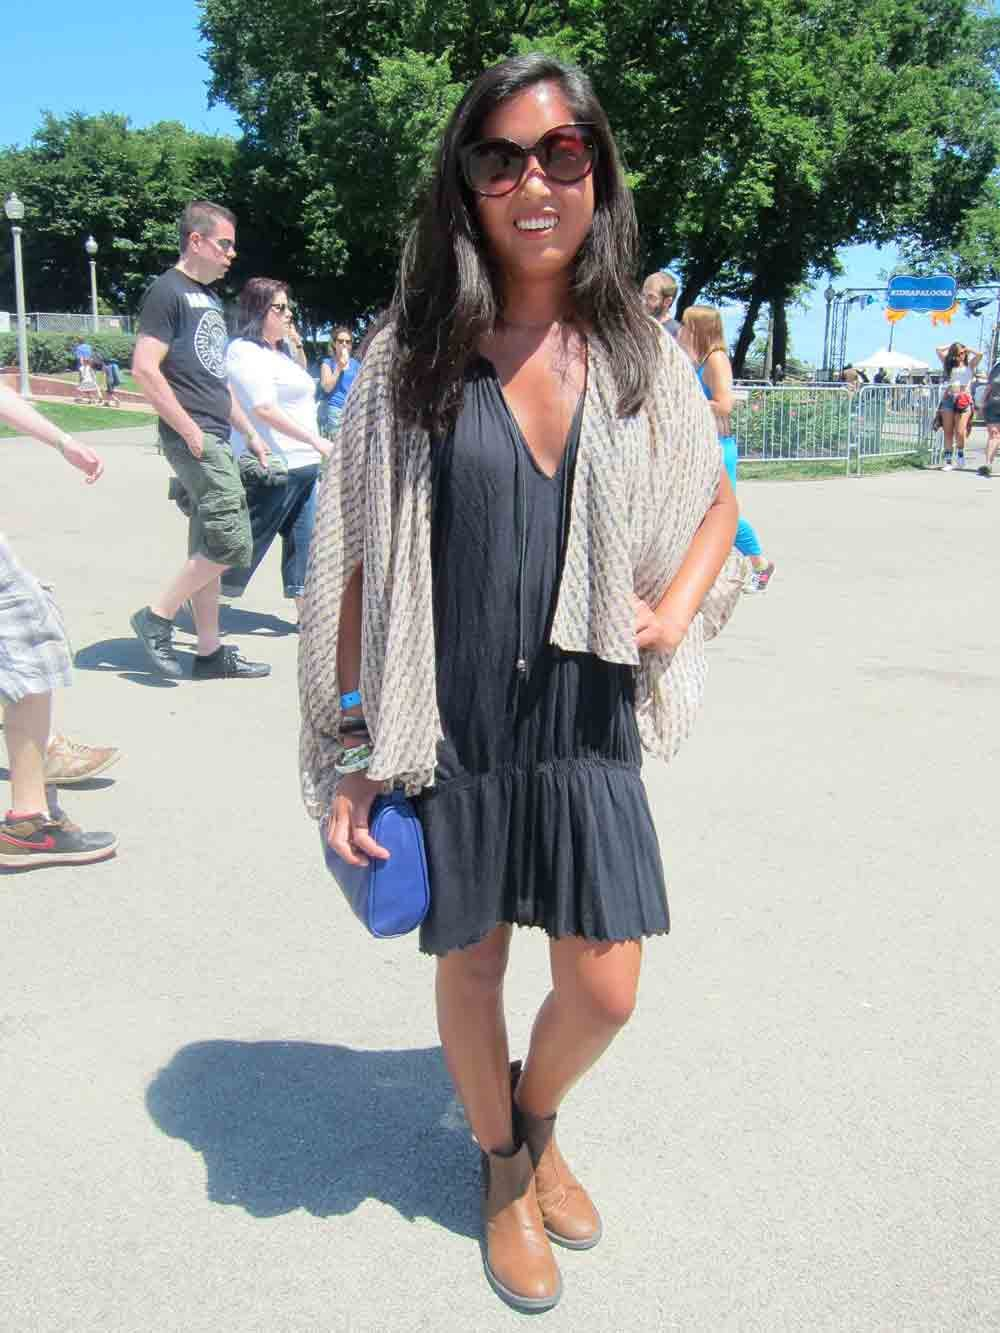 Chicago weather can leave you hot one minute and chilled the next. Stacey clearly came prepared for all conditions with an Akira kimono layered over her Free People dress. Her House of Harlow sunglasses and H&M bag didn't hurt, either.